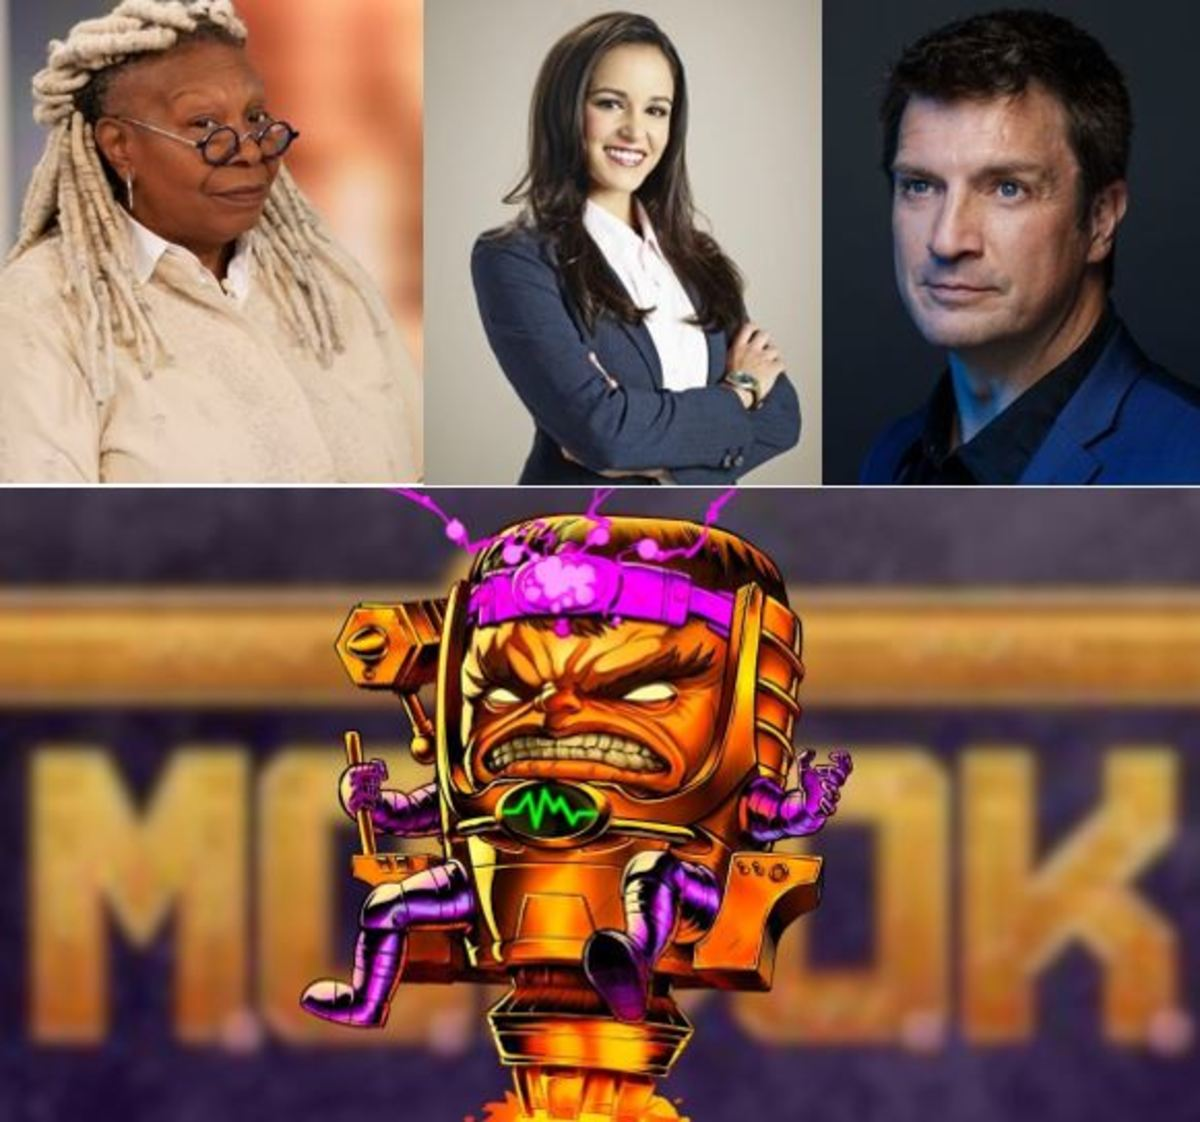 Whoopi Goldberg, Melissa Fumero, Nathan Fillion